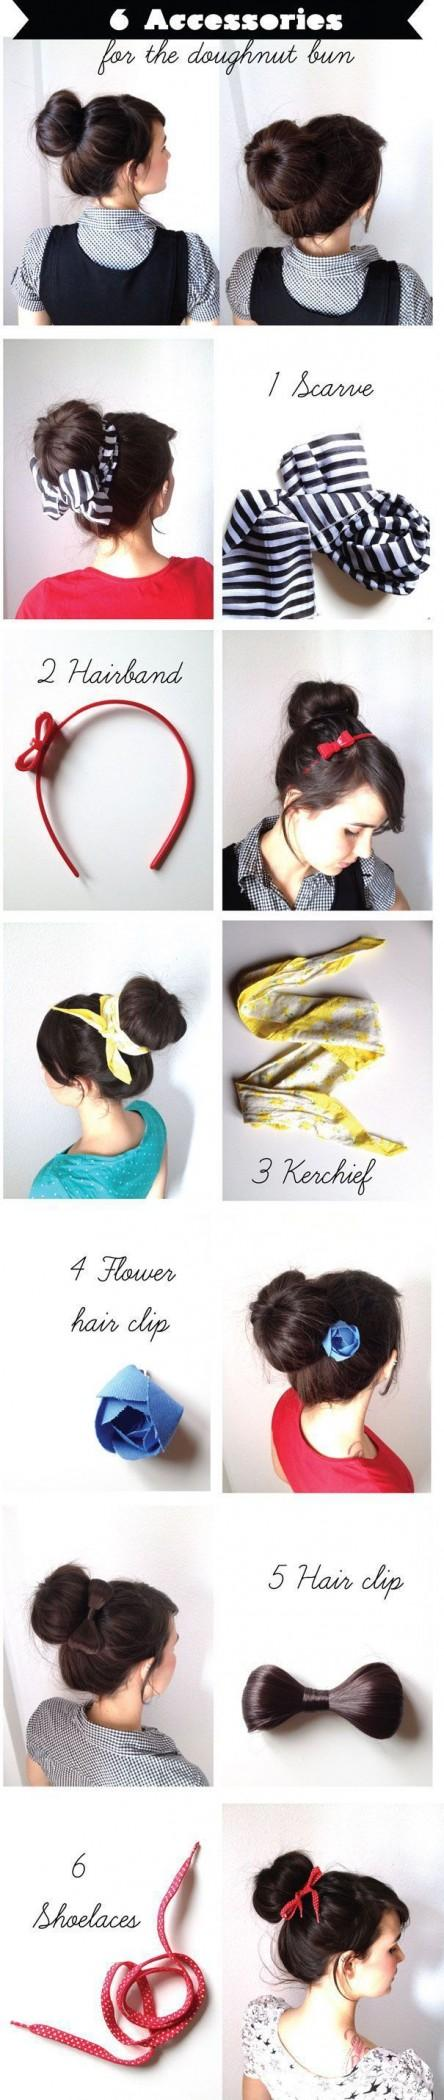 creative_hairstyles_that_you_can_easily_do_at_home_640_high_16